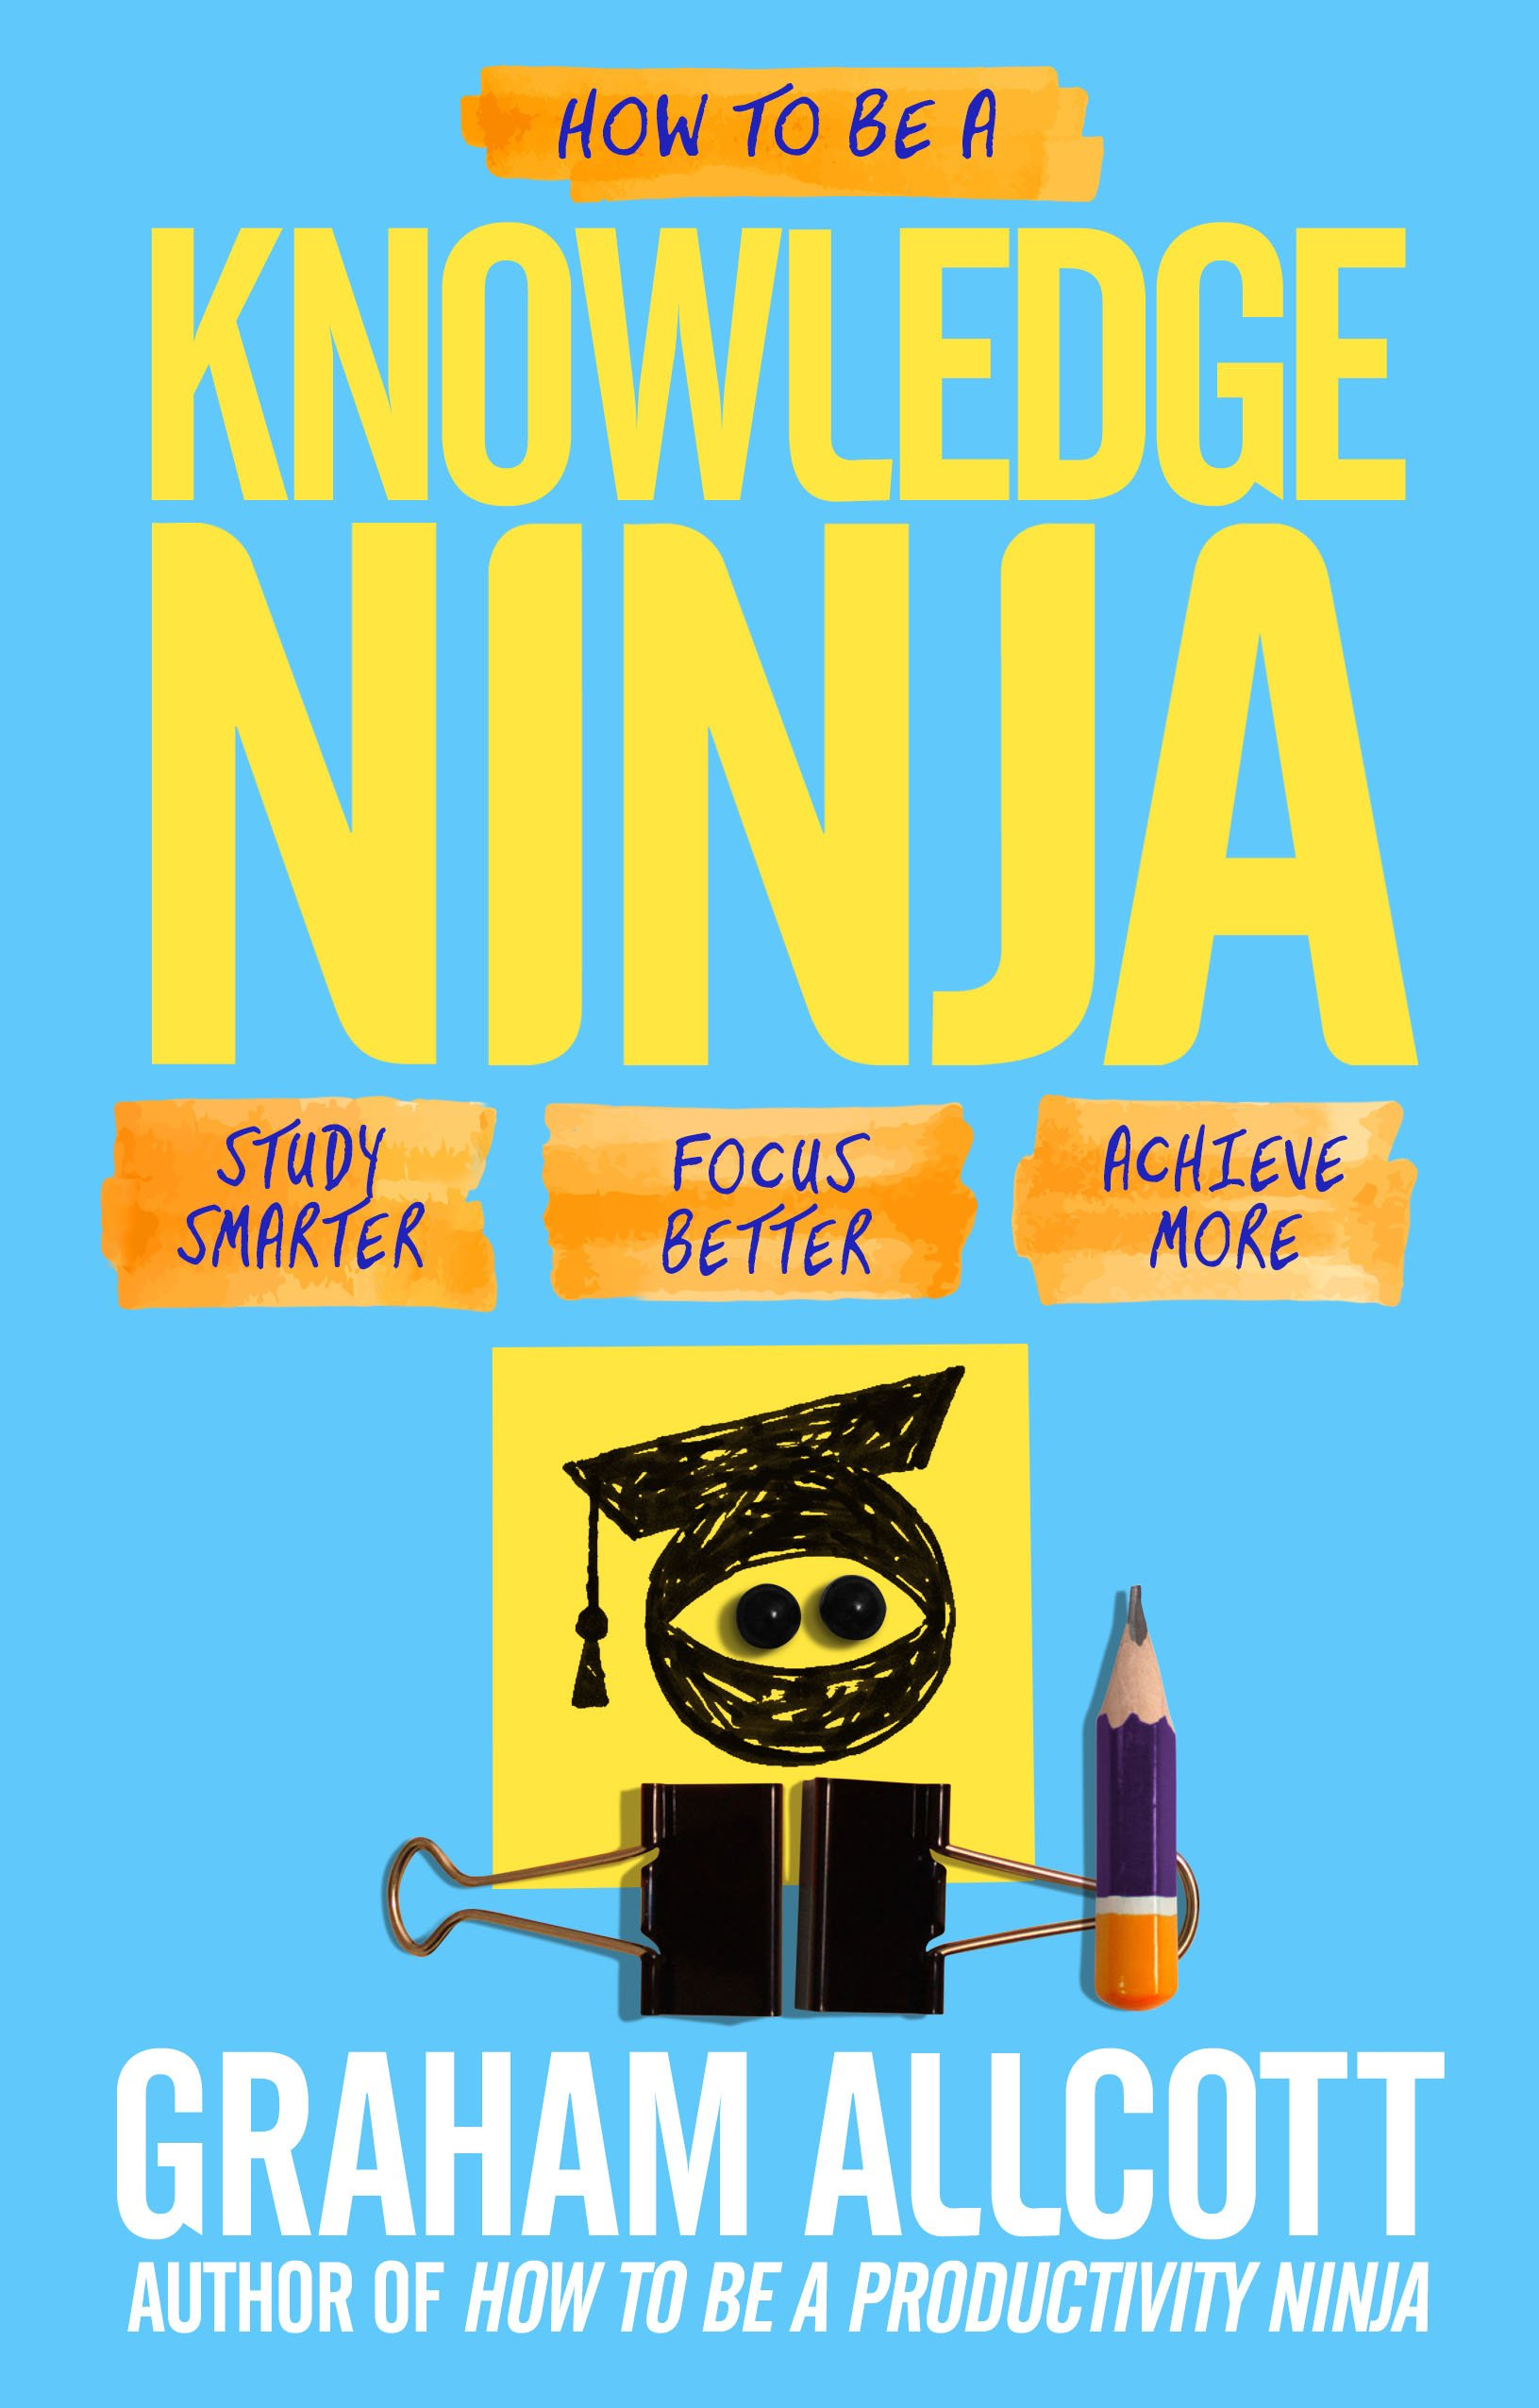 How to be a Knowledge Ninja: Study smarter. Focus better. Achieve more.